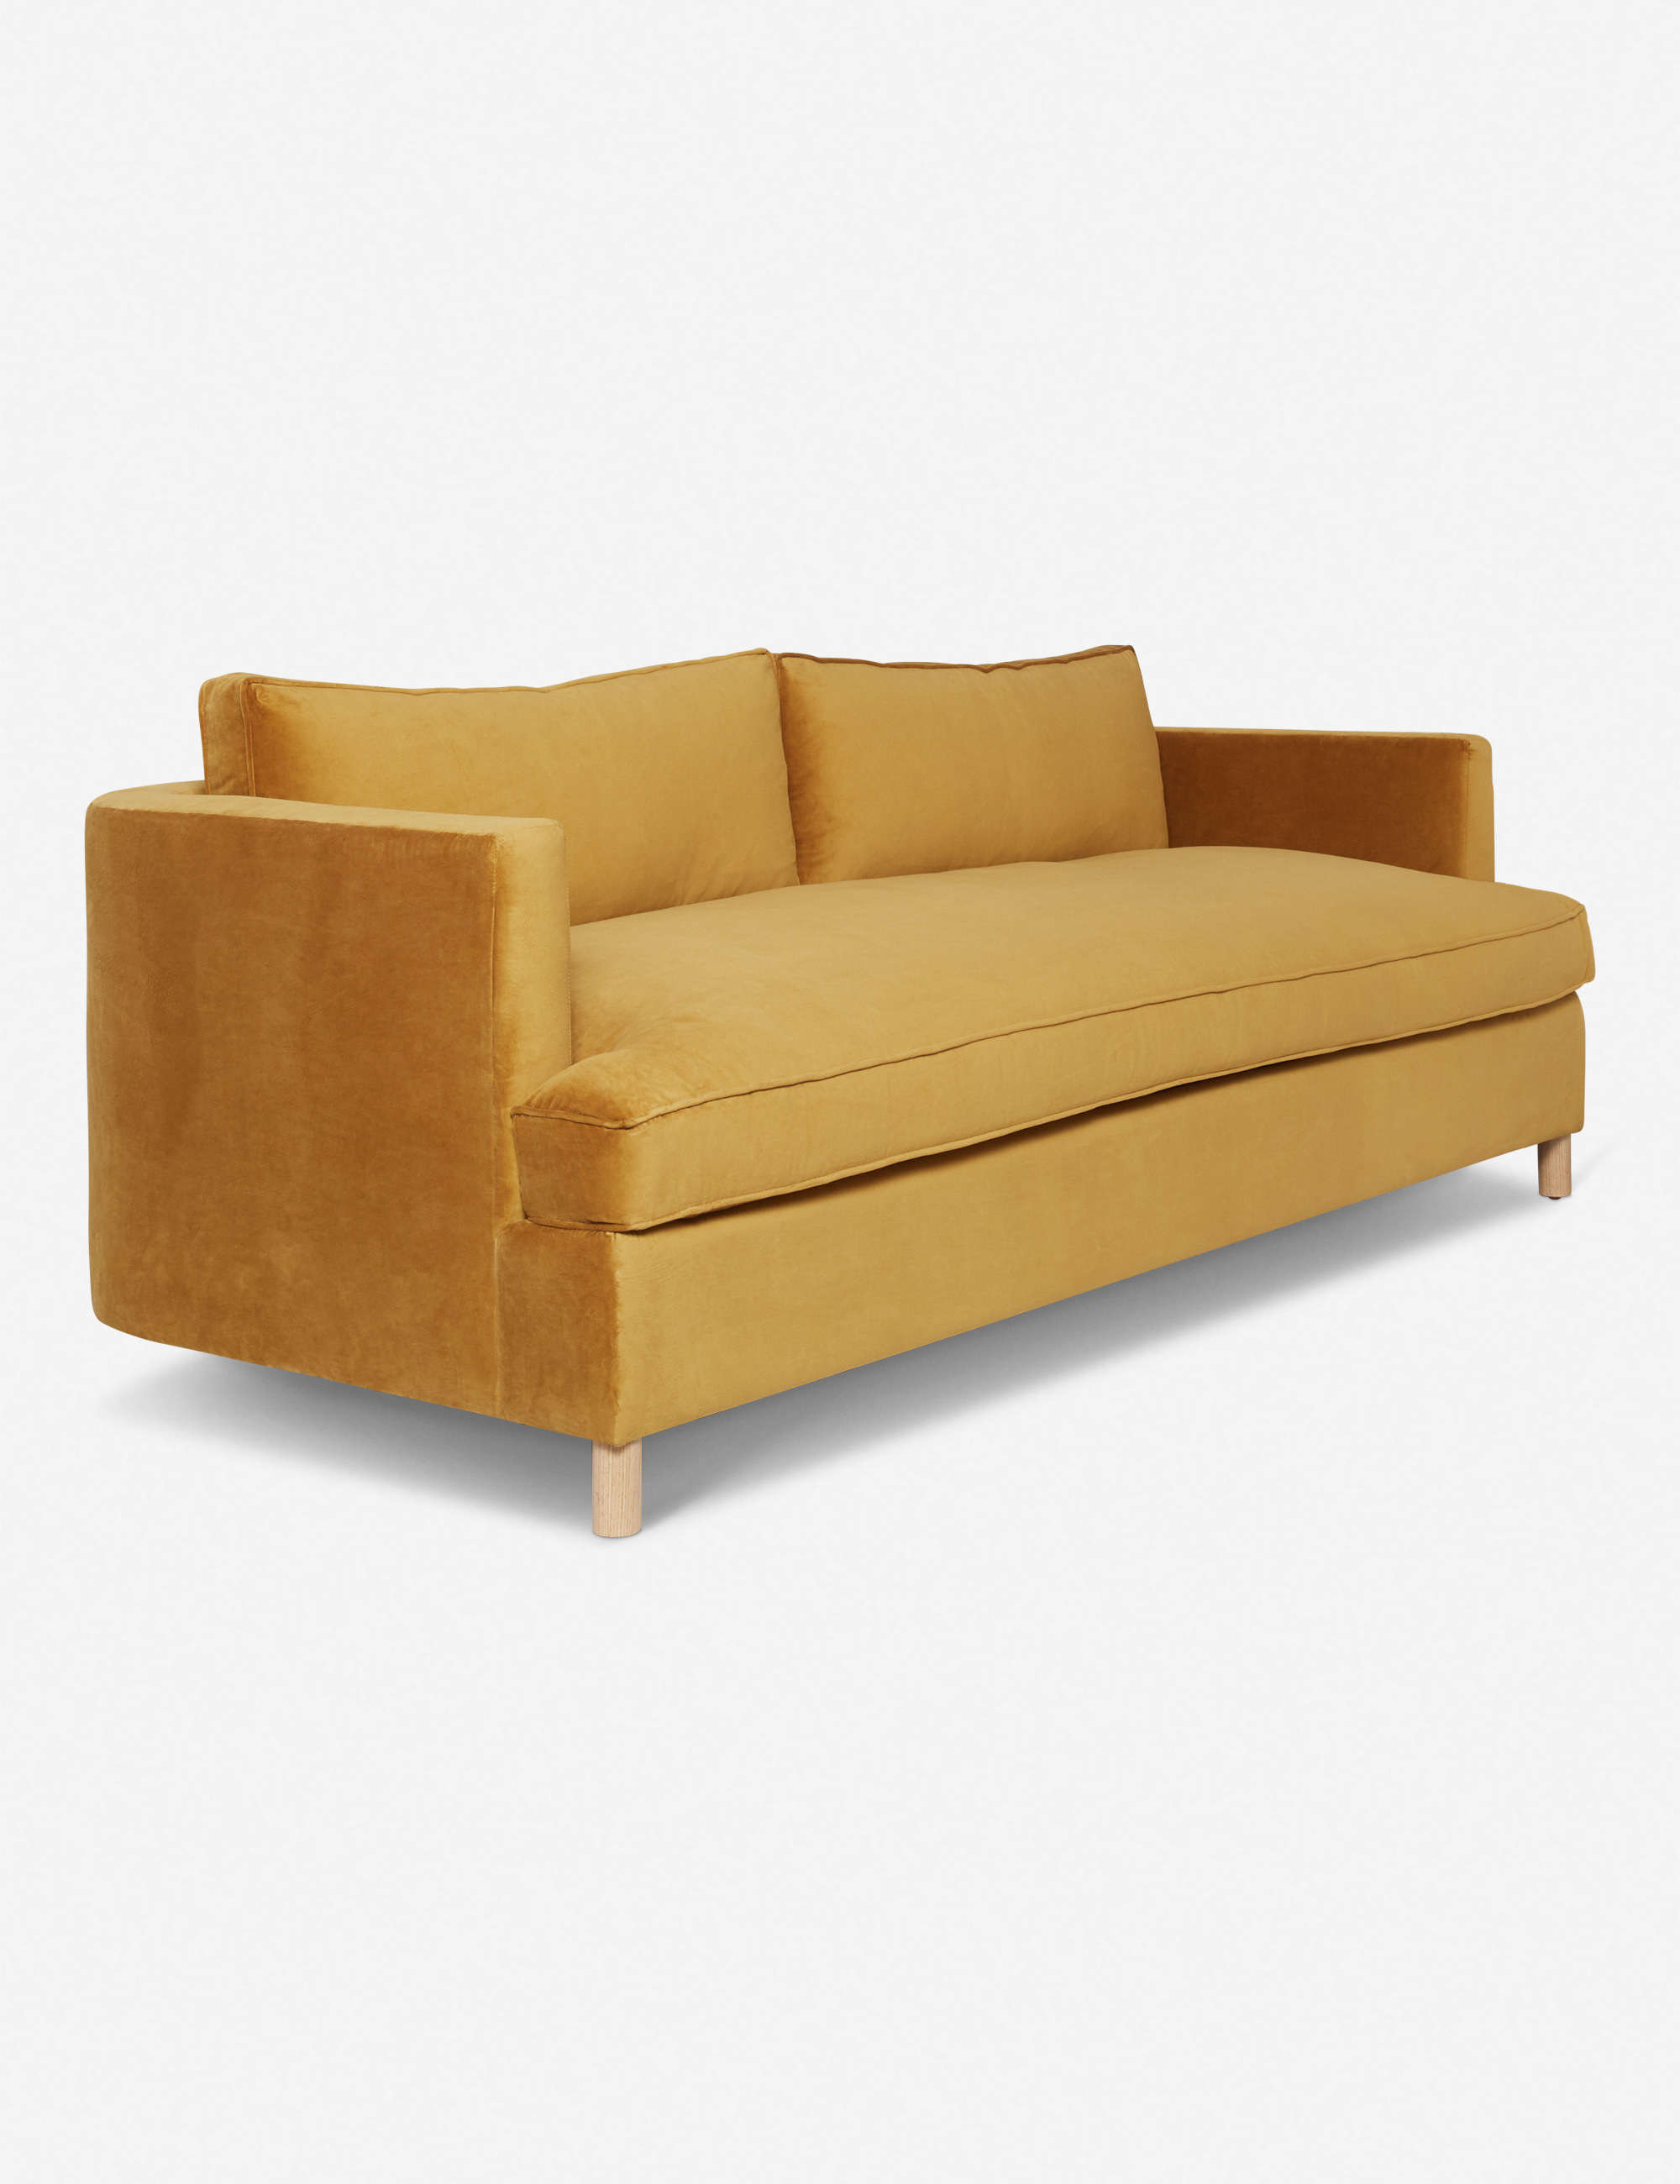 GINNY_MACDONALD_BELMONT-SOFA-golden-rod-3